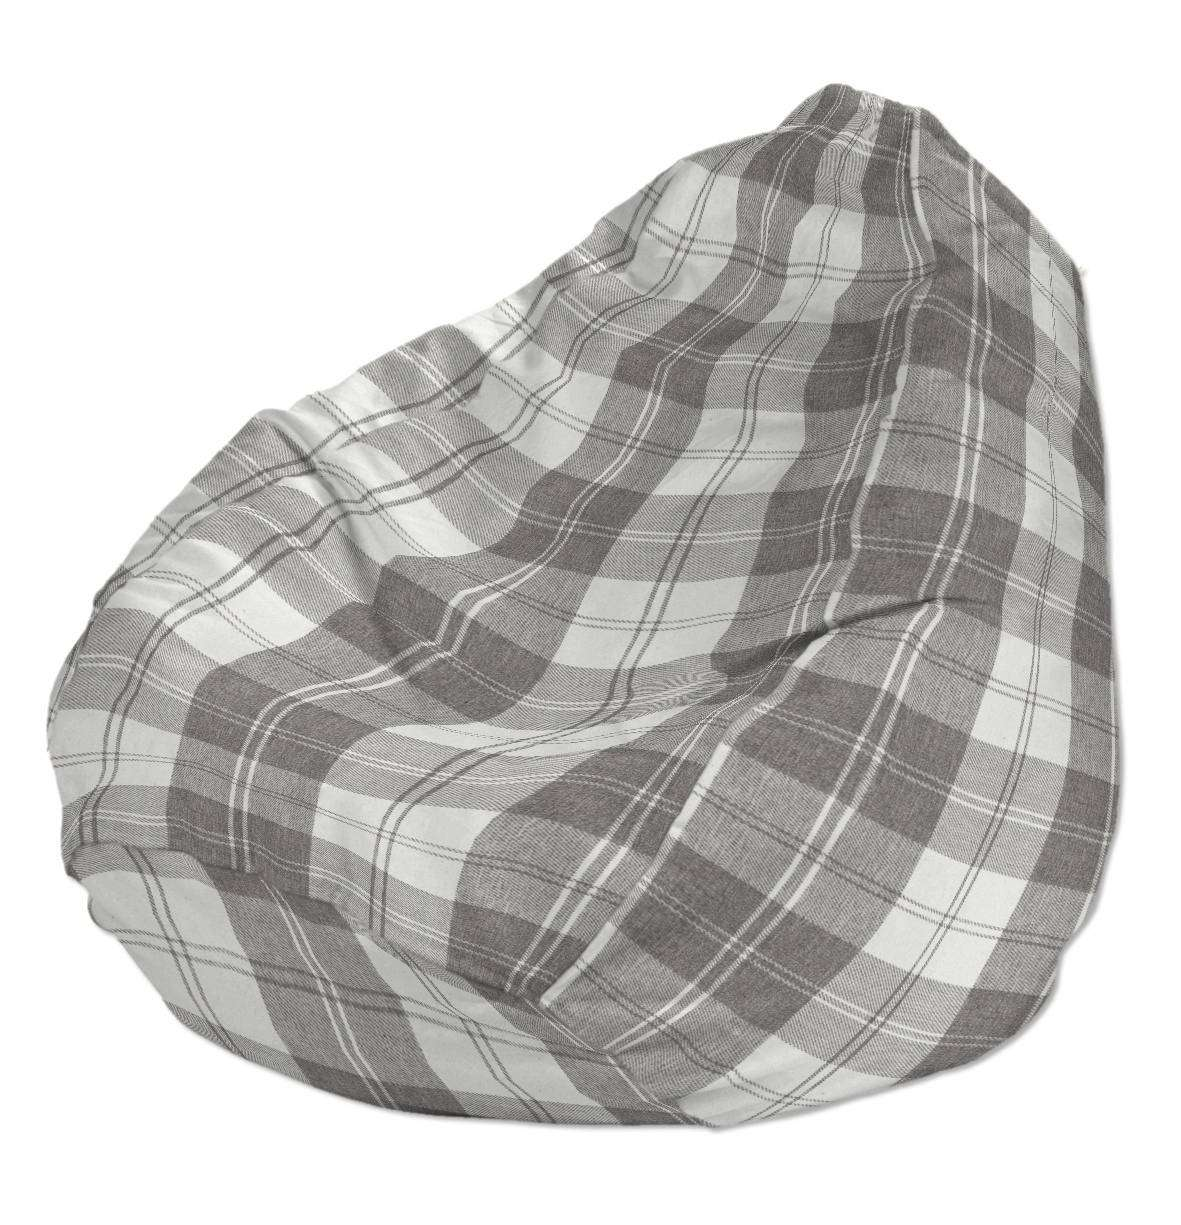 Beanbag Ø50 x 85 cm (20 x 33,5 inch) in collection Edinburgh, fabric: 115-79